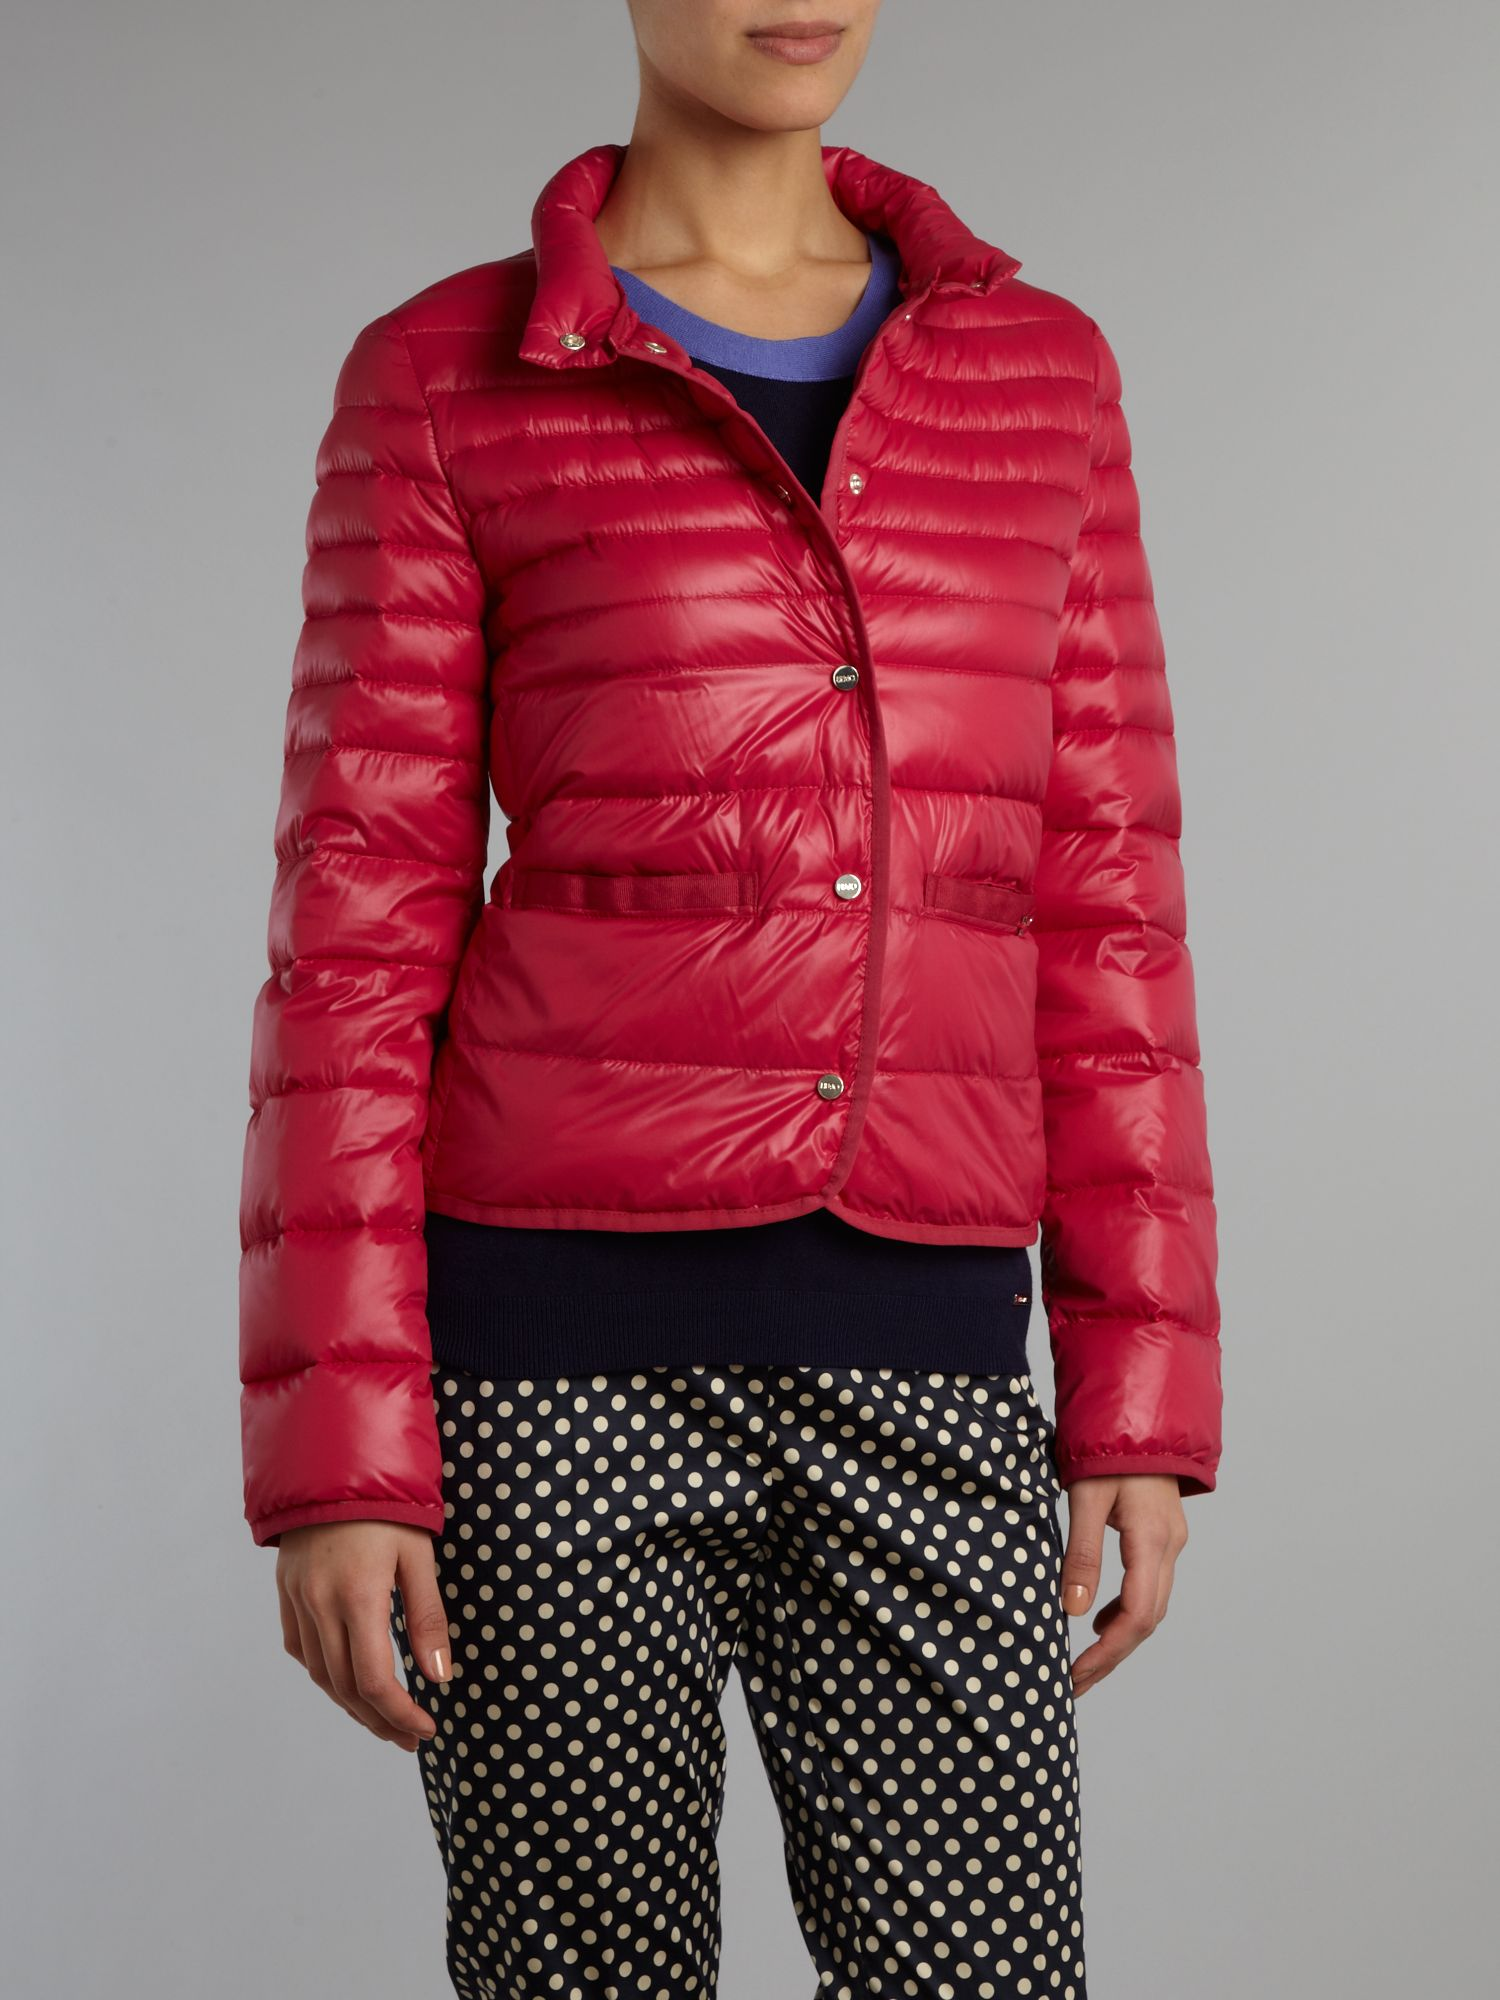 Long sleeved funnel neck puffa jacket